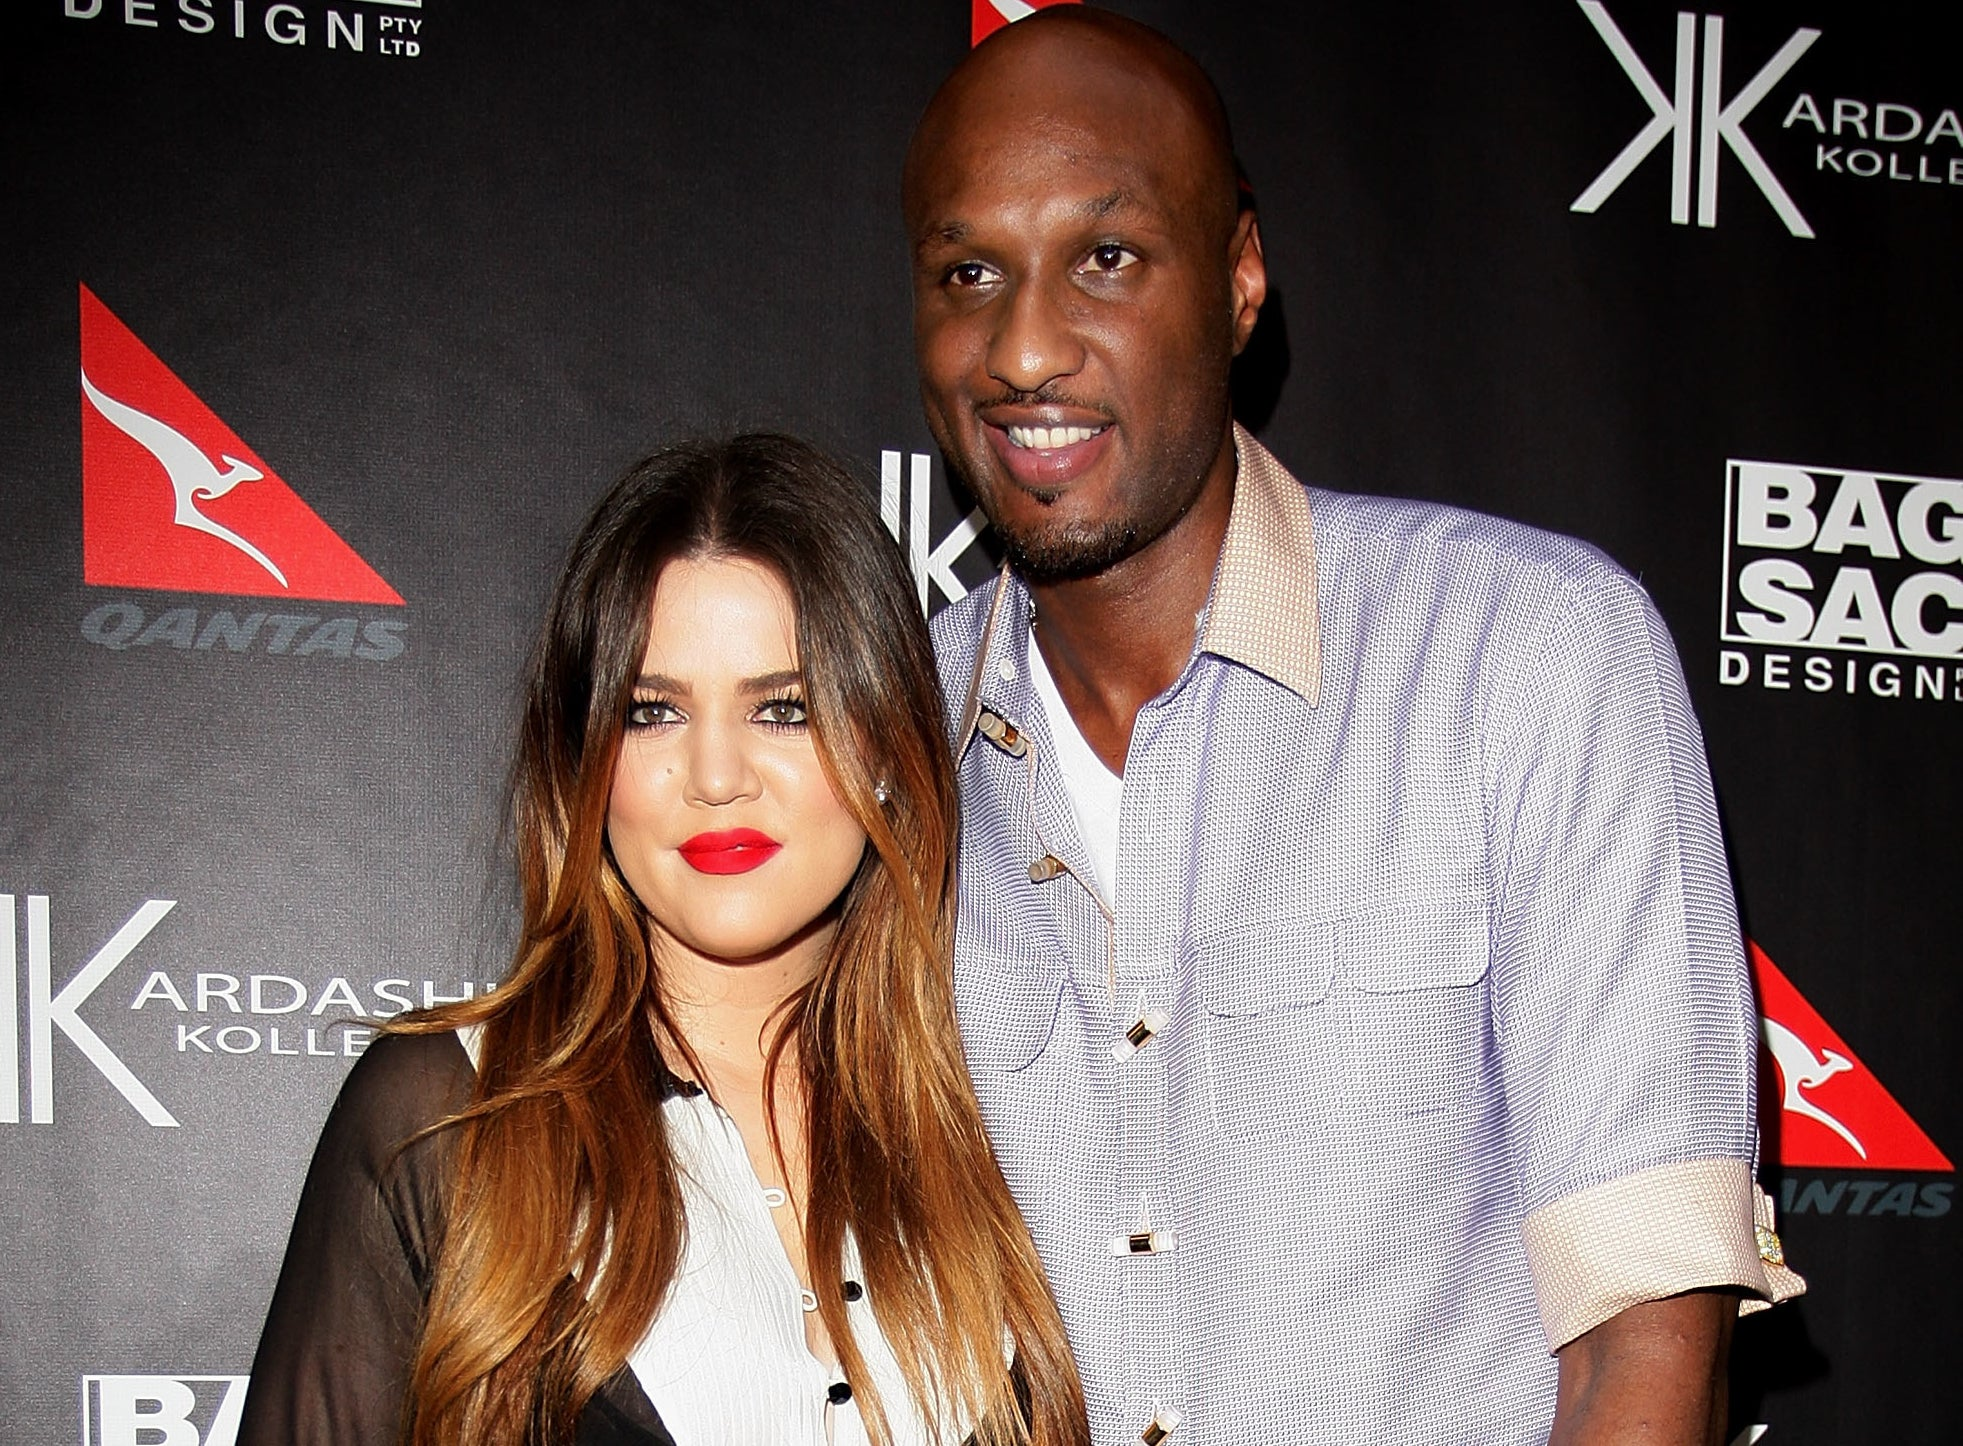 Khloé smiles next to Lamar in an old photo